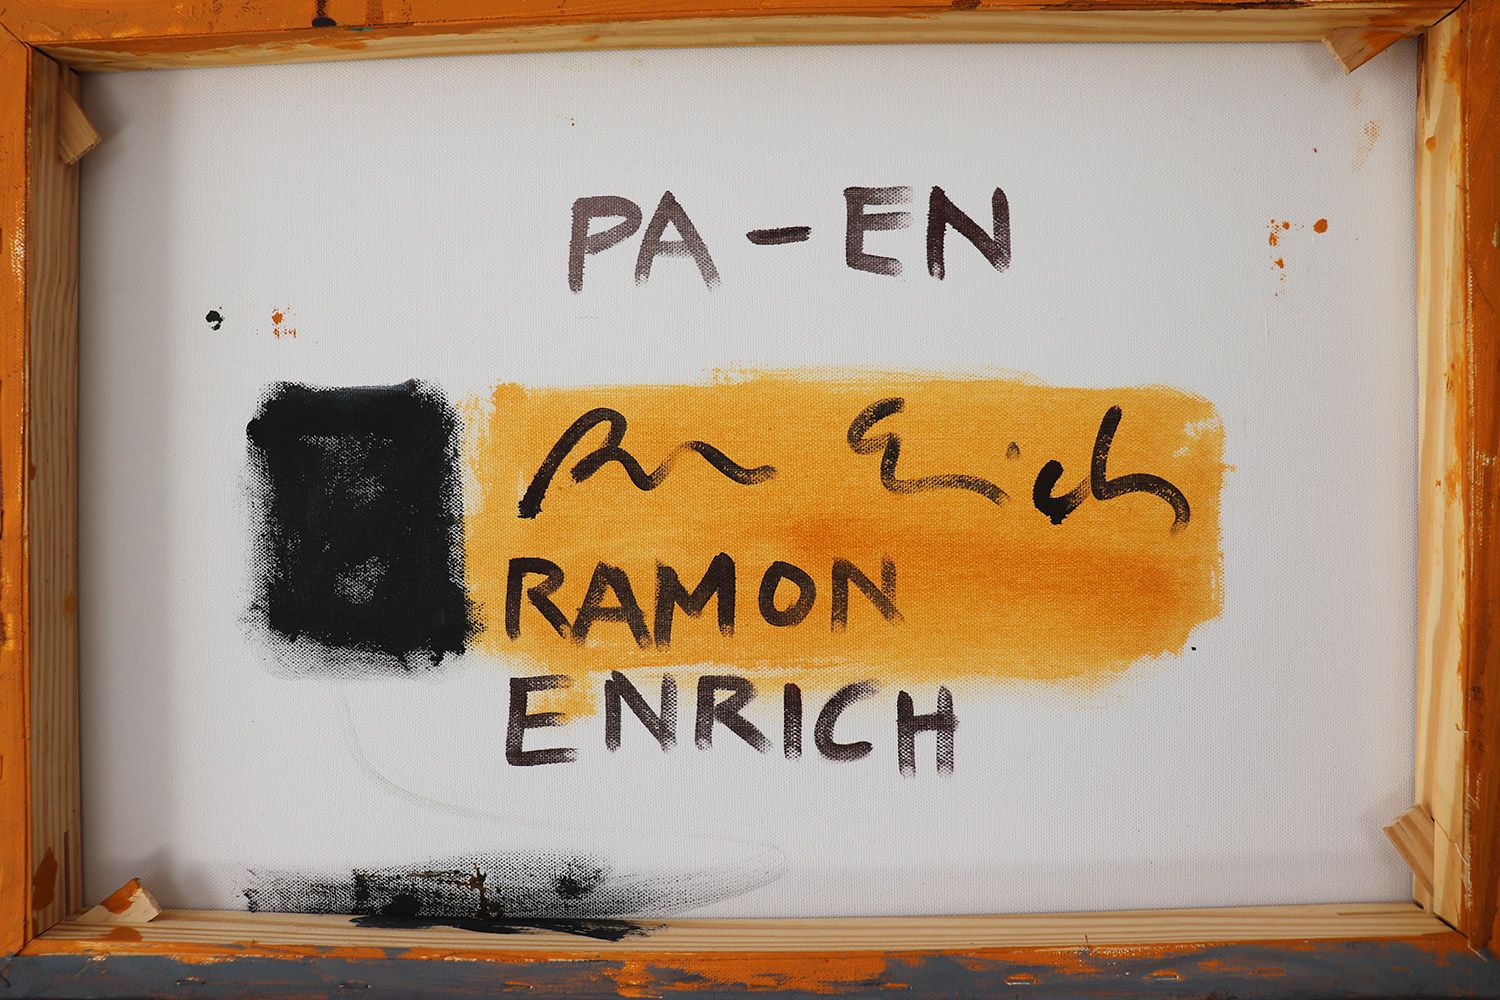 PA-EN,Ramon Enrich,Contemporary painting, detail 4